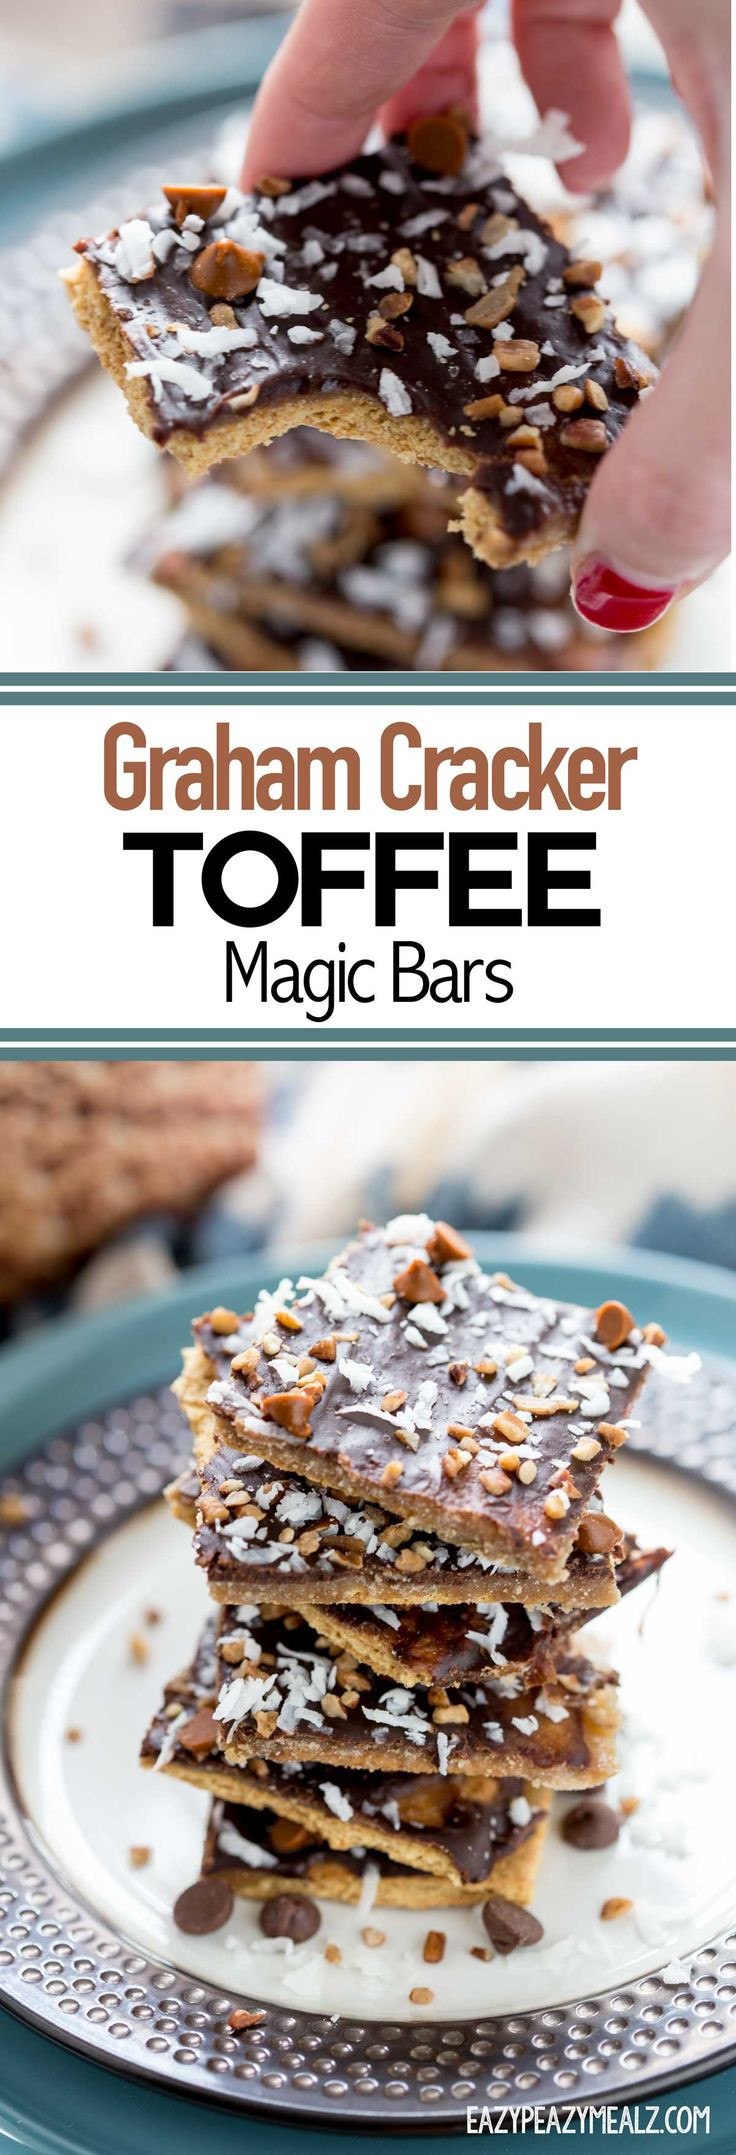 Christmas Crack Graham Crackers  17 Best ideas about Cracker Toffee on Pinterest